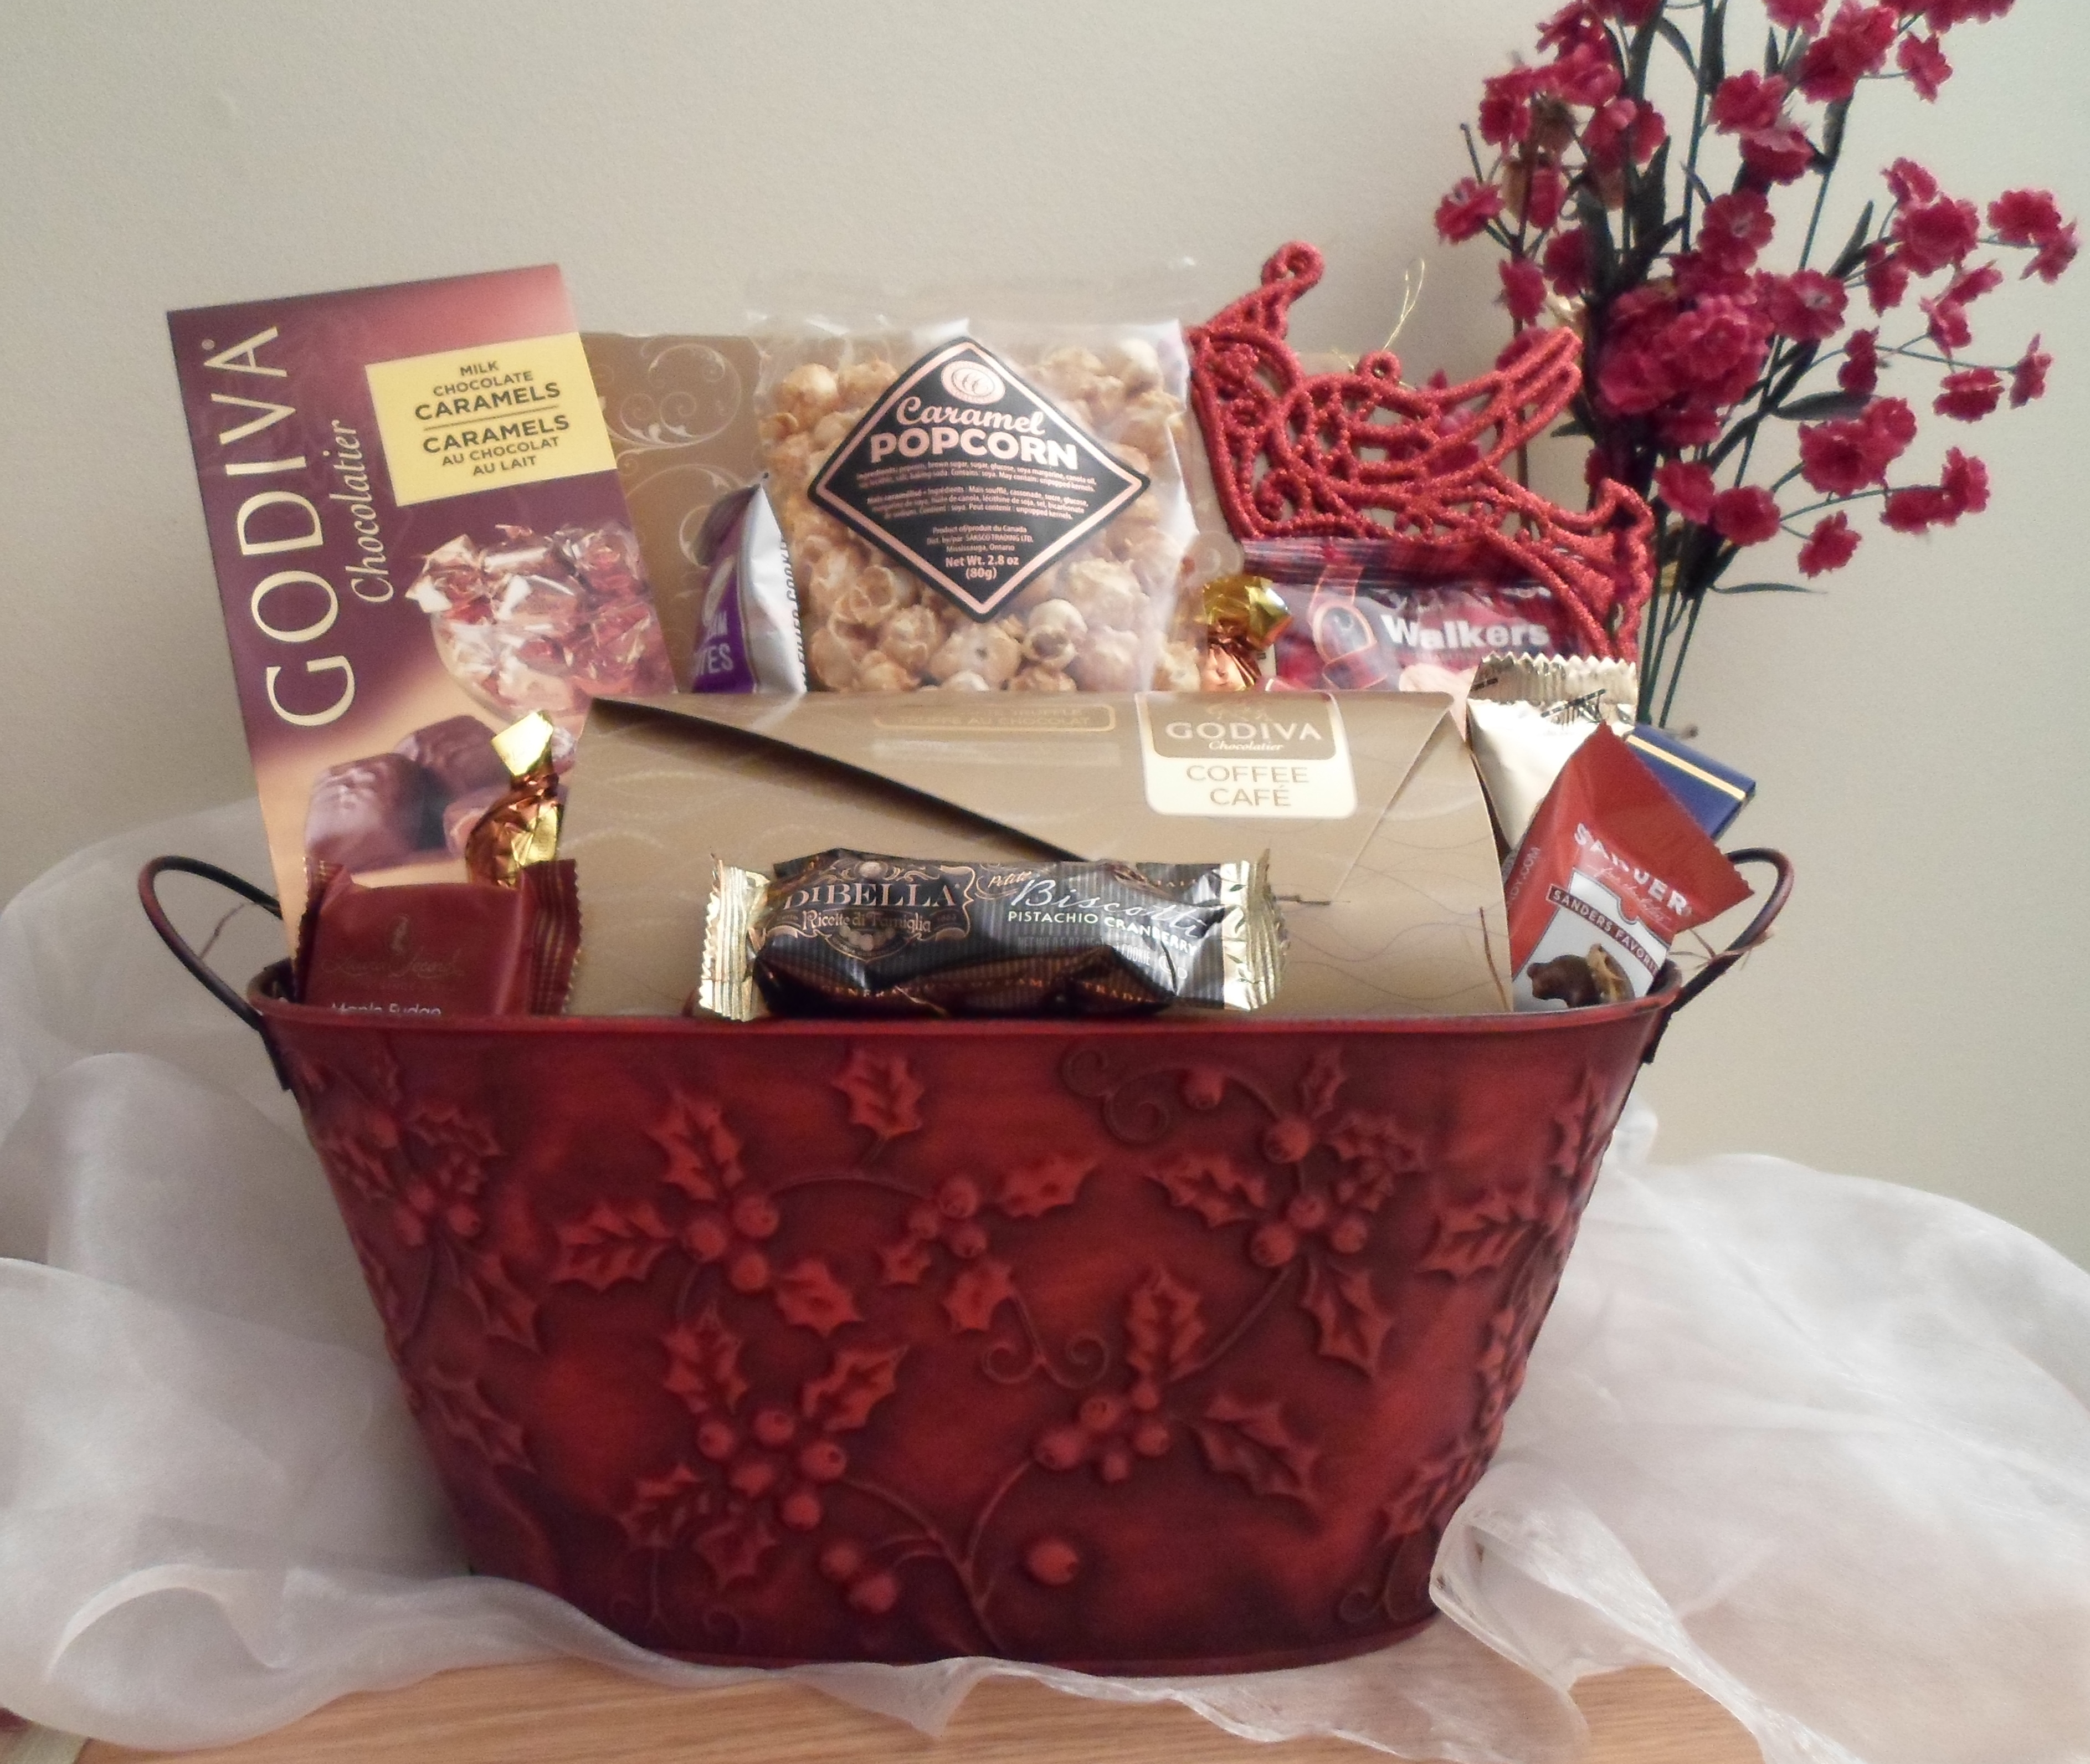 Red poinsetta holiday gift basket lebouquet blanc red poinsetta holiday gift basket negle Image collections